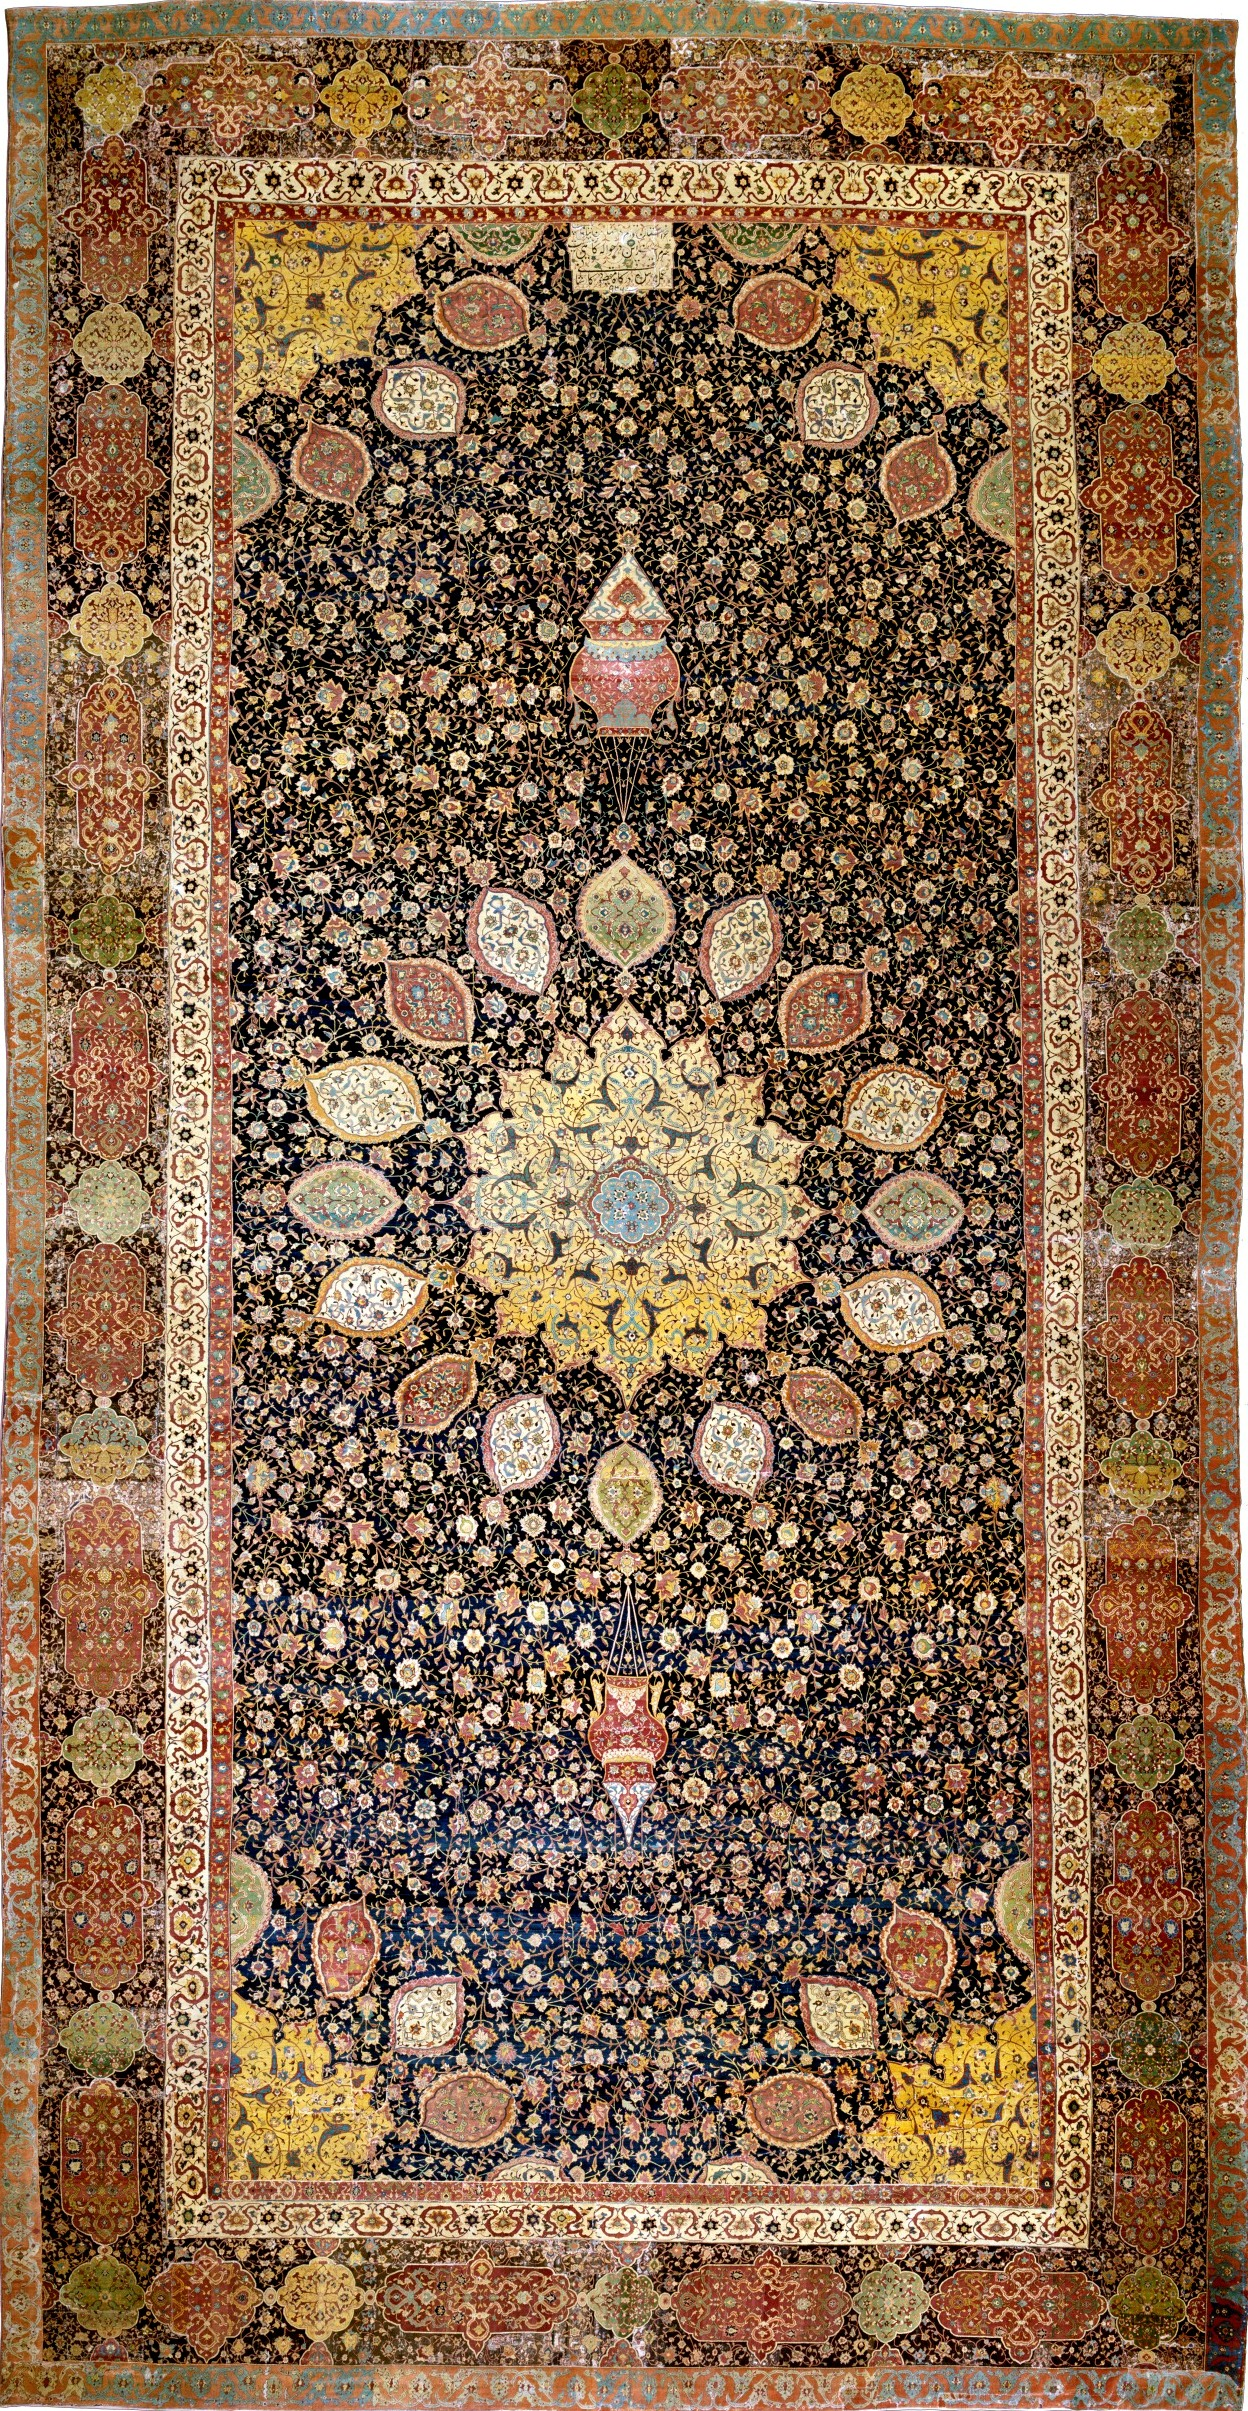 The Ardabil Carpet Persia Dated 946 AH VA Museum No 272